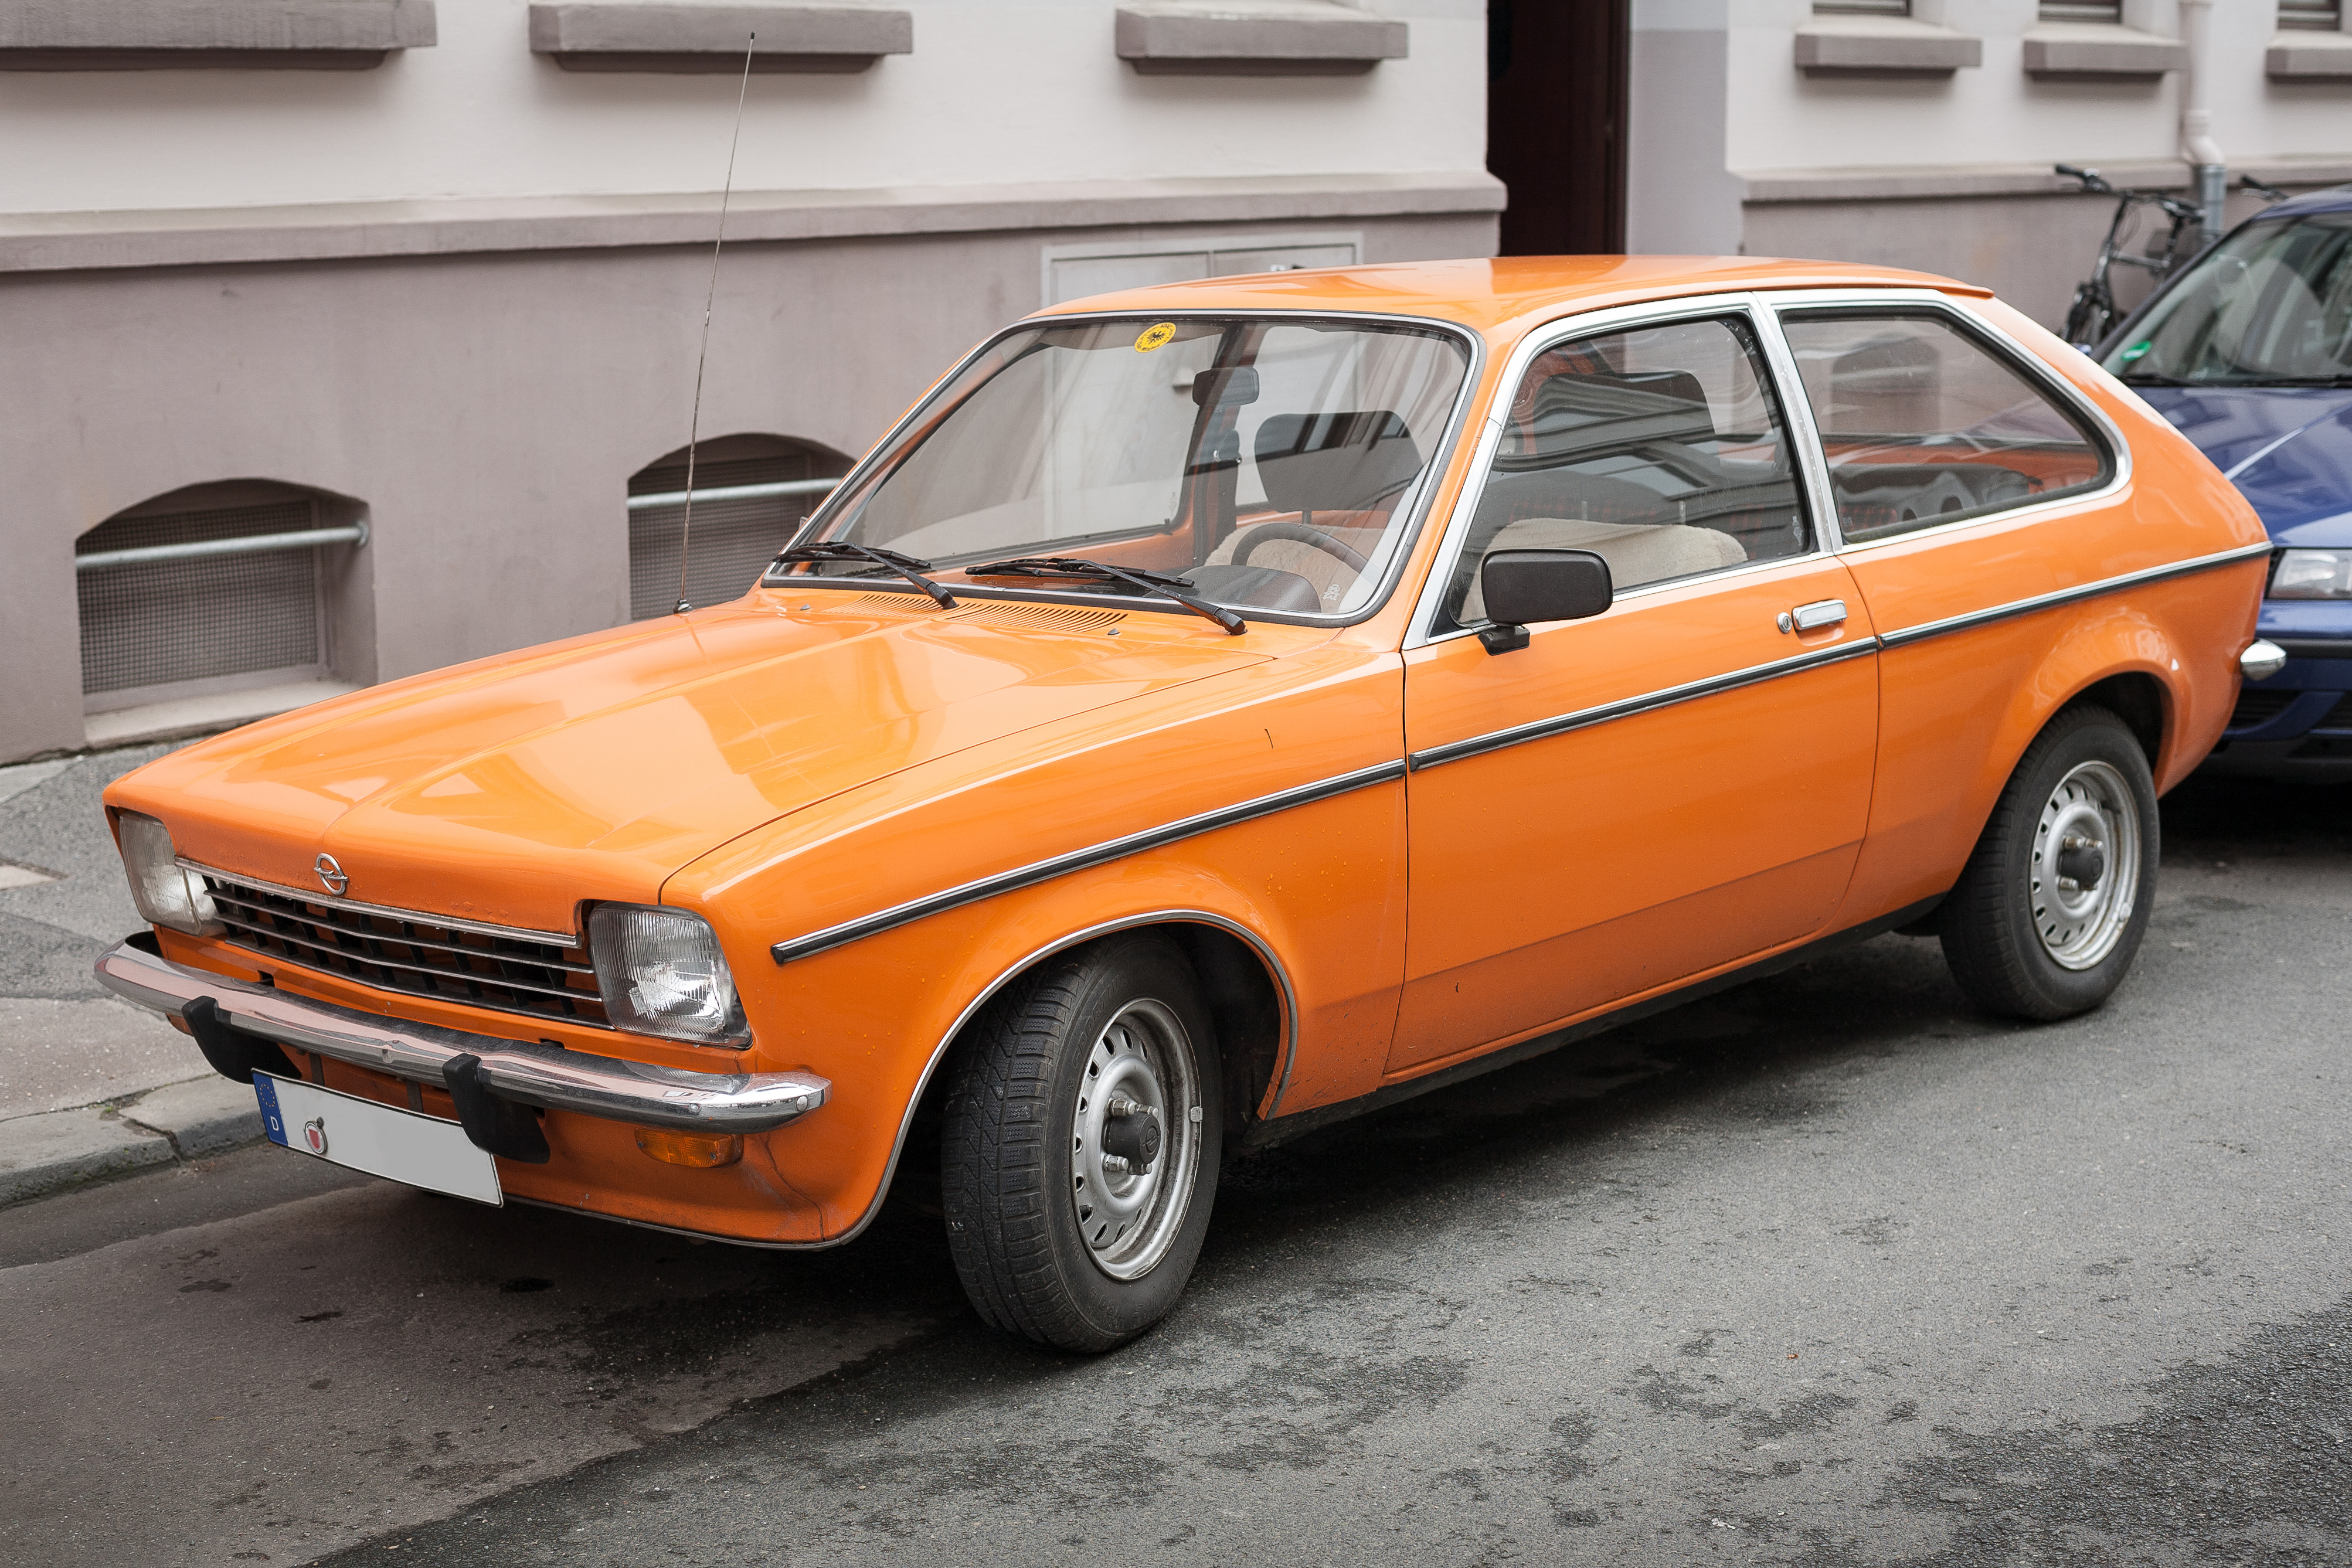 opel kadett 1975 images galleries with a bite. Black Bedroom Furniture Sets. Home Design Ideas